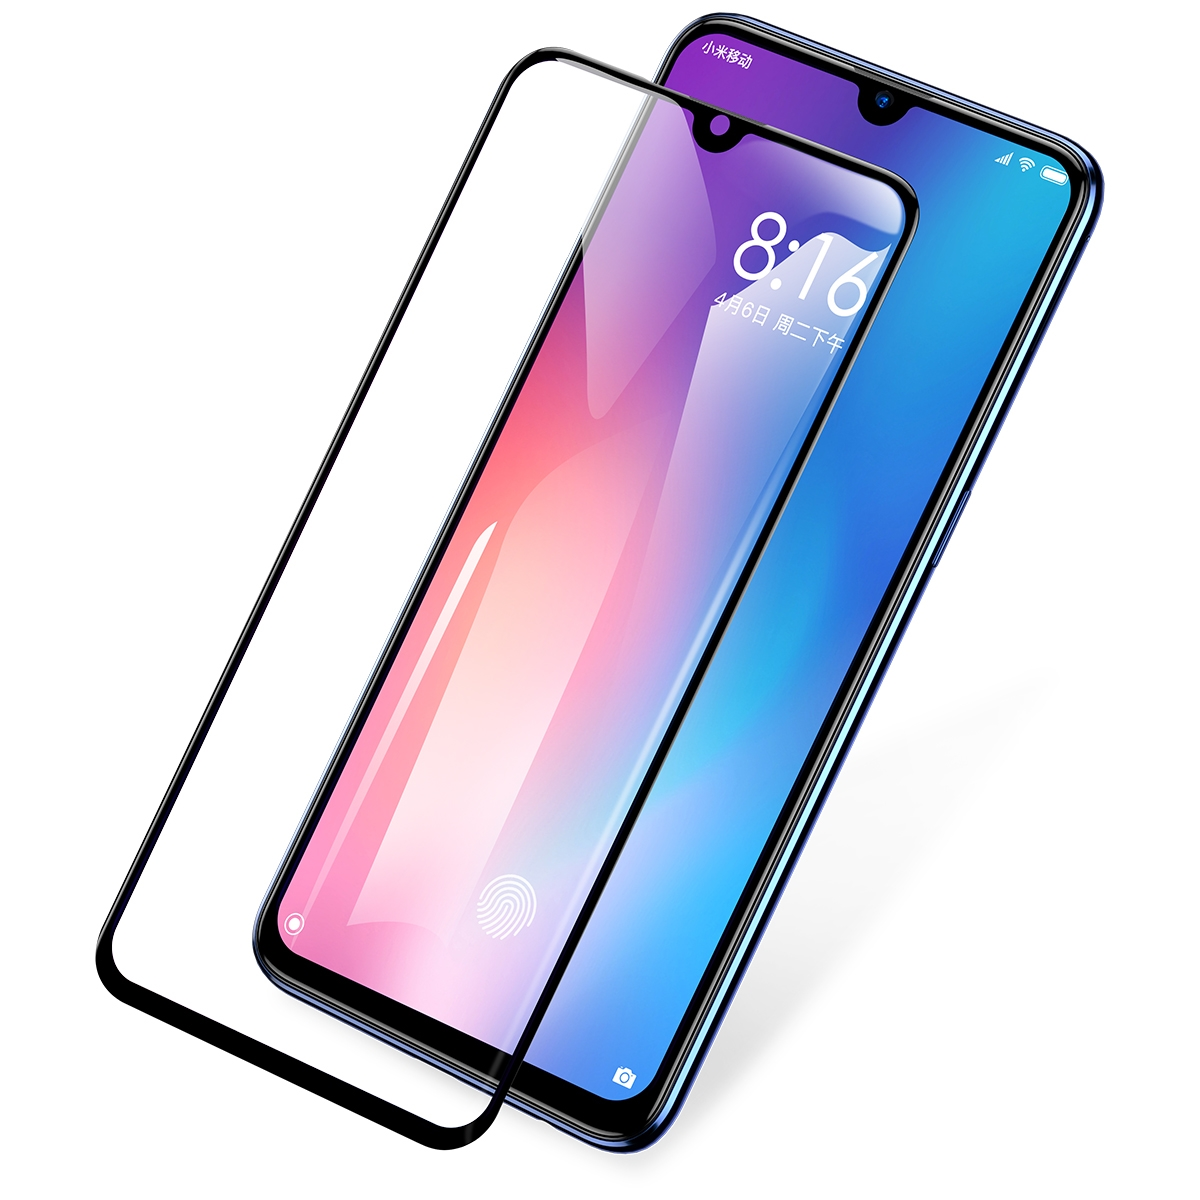 Baseus 0.3mm Curved-screen Tempered Glass Screen for Mi 9 Black SGMIM9-KA01